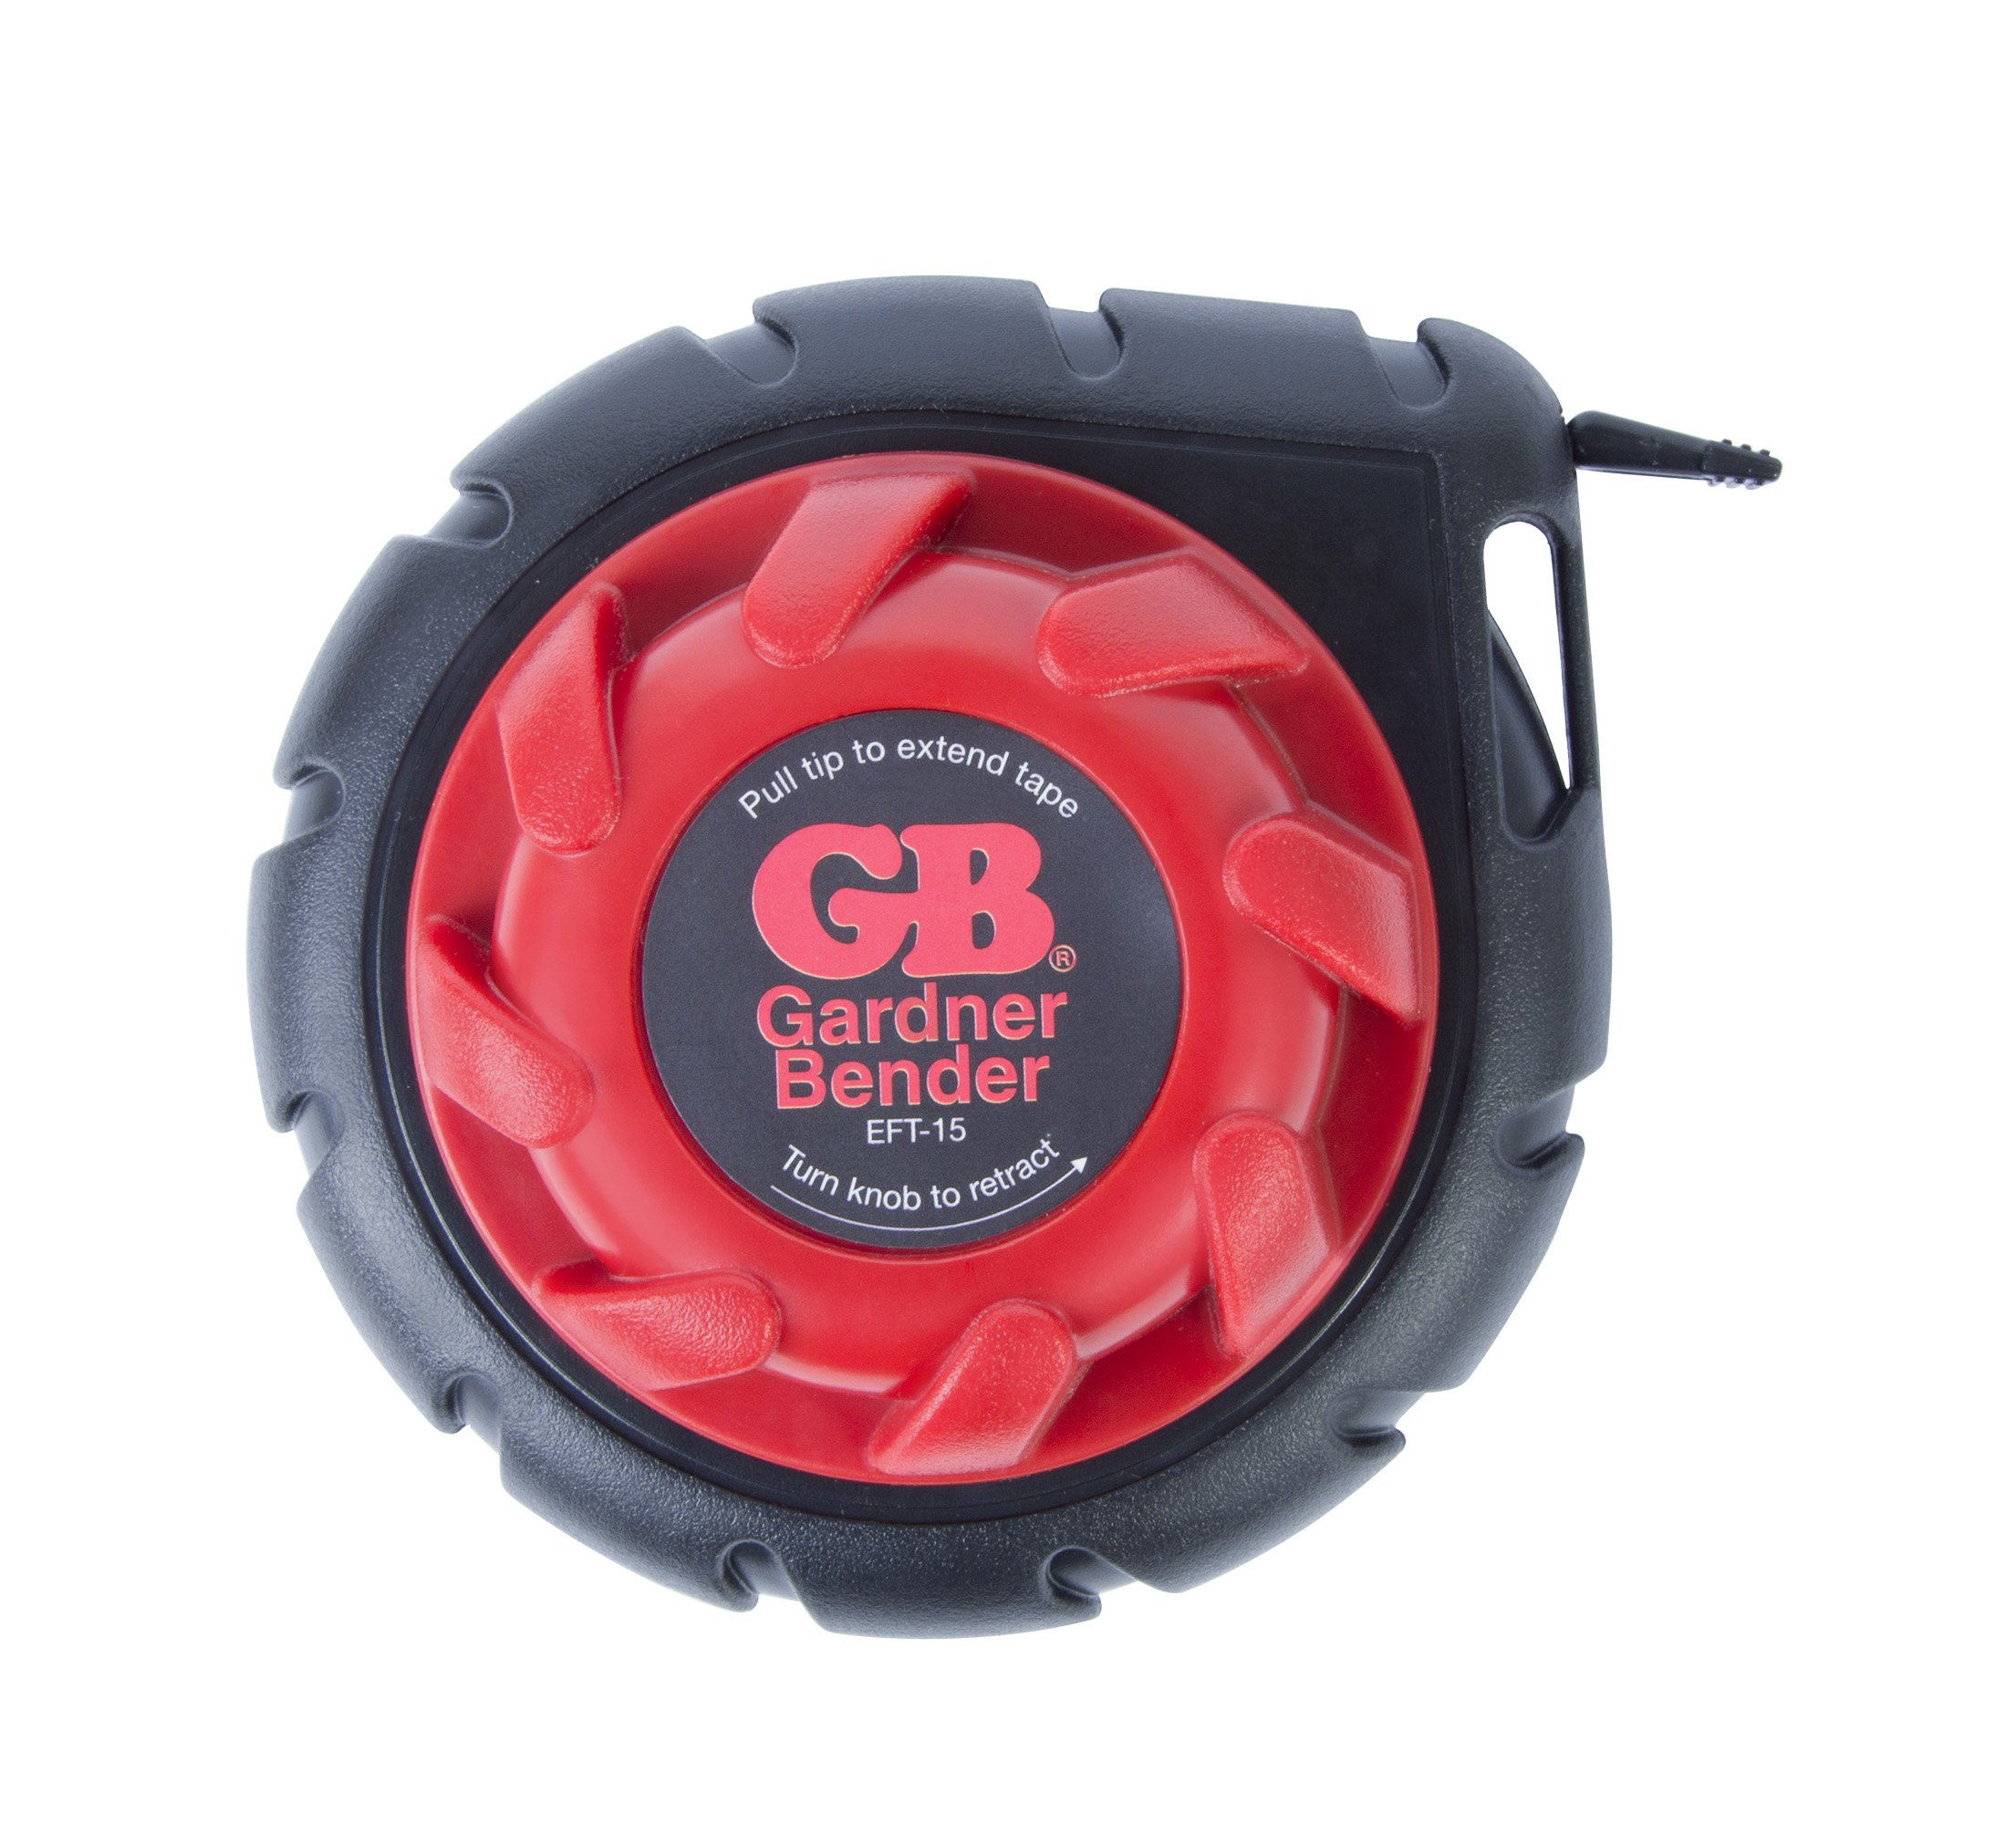 Gardner Bender EFT-15 Mini Cable Snake, 15 Ft Steel Fish Tape, Electrical Wire Fishing Tape, Red & Black